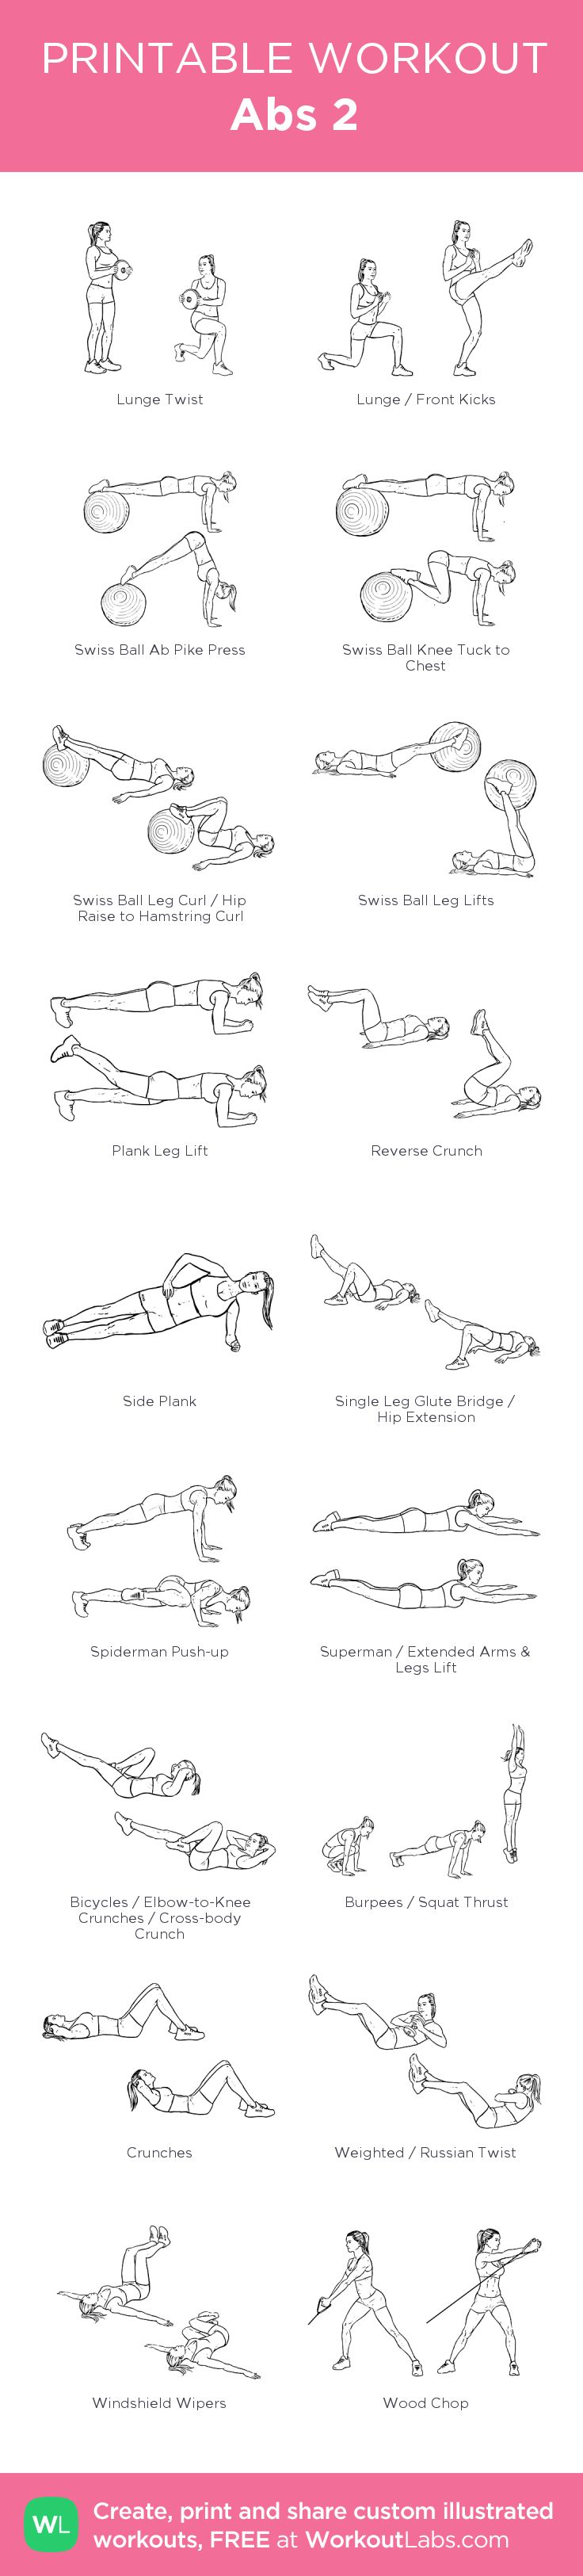 Abs 2:my visual workout created at WorkoutLabs.com • Click through to customize and download as a FREE PDF! #customworkout